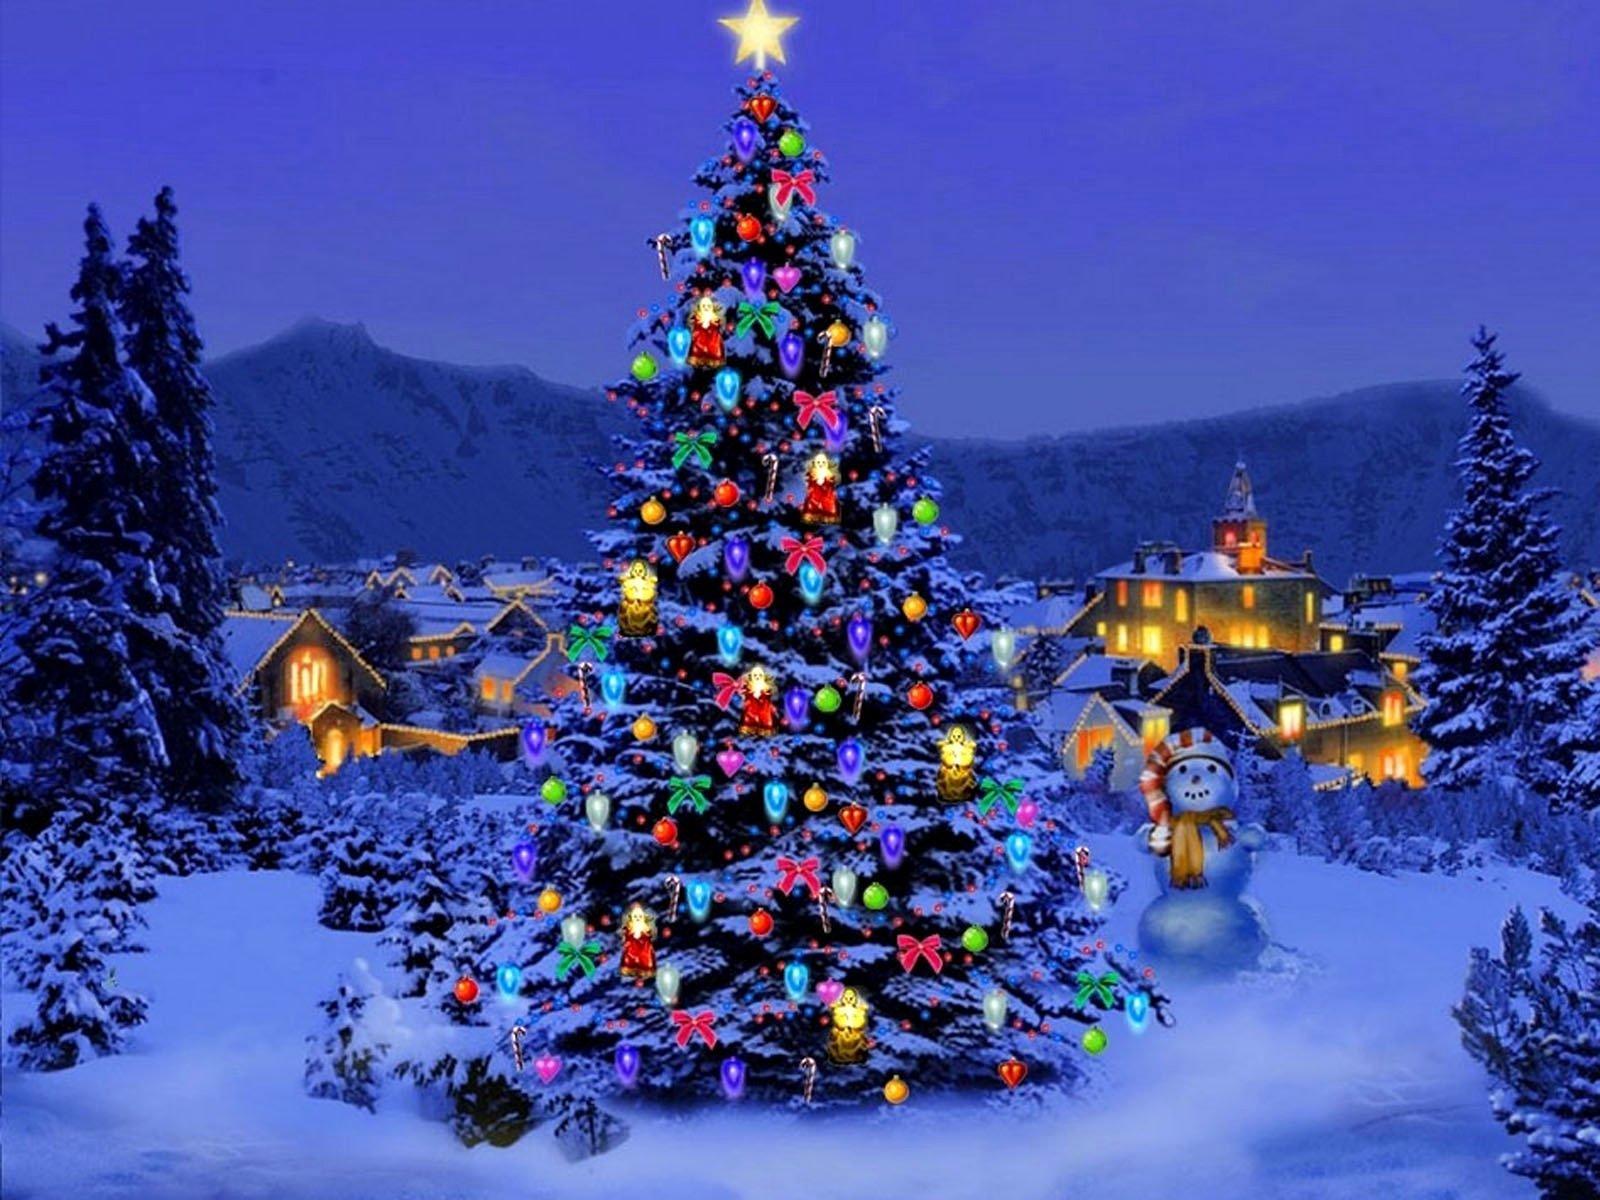 Free Christmas Desktop Wallpaper Fresh Wallpapers Christmas Trees Wallpapers